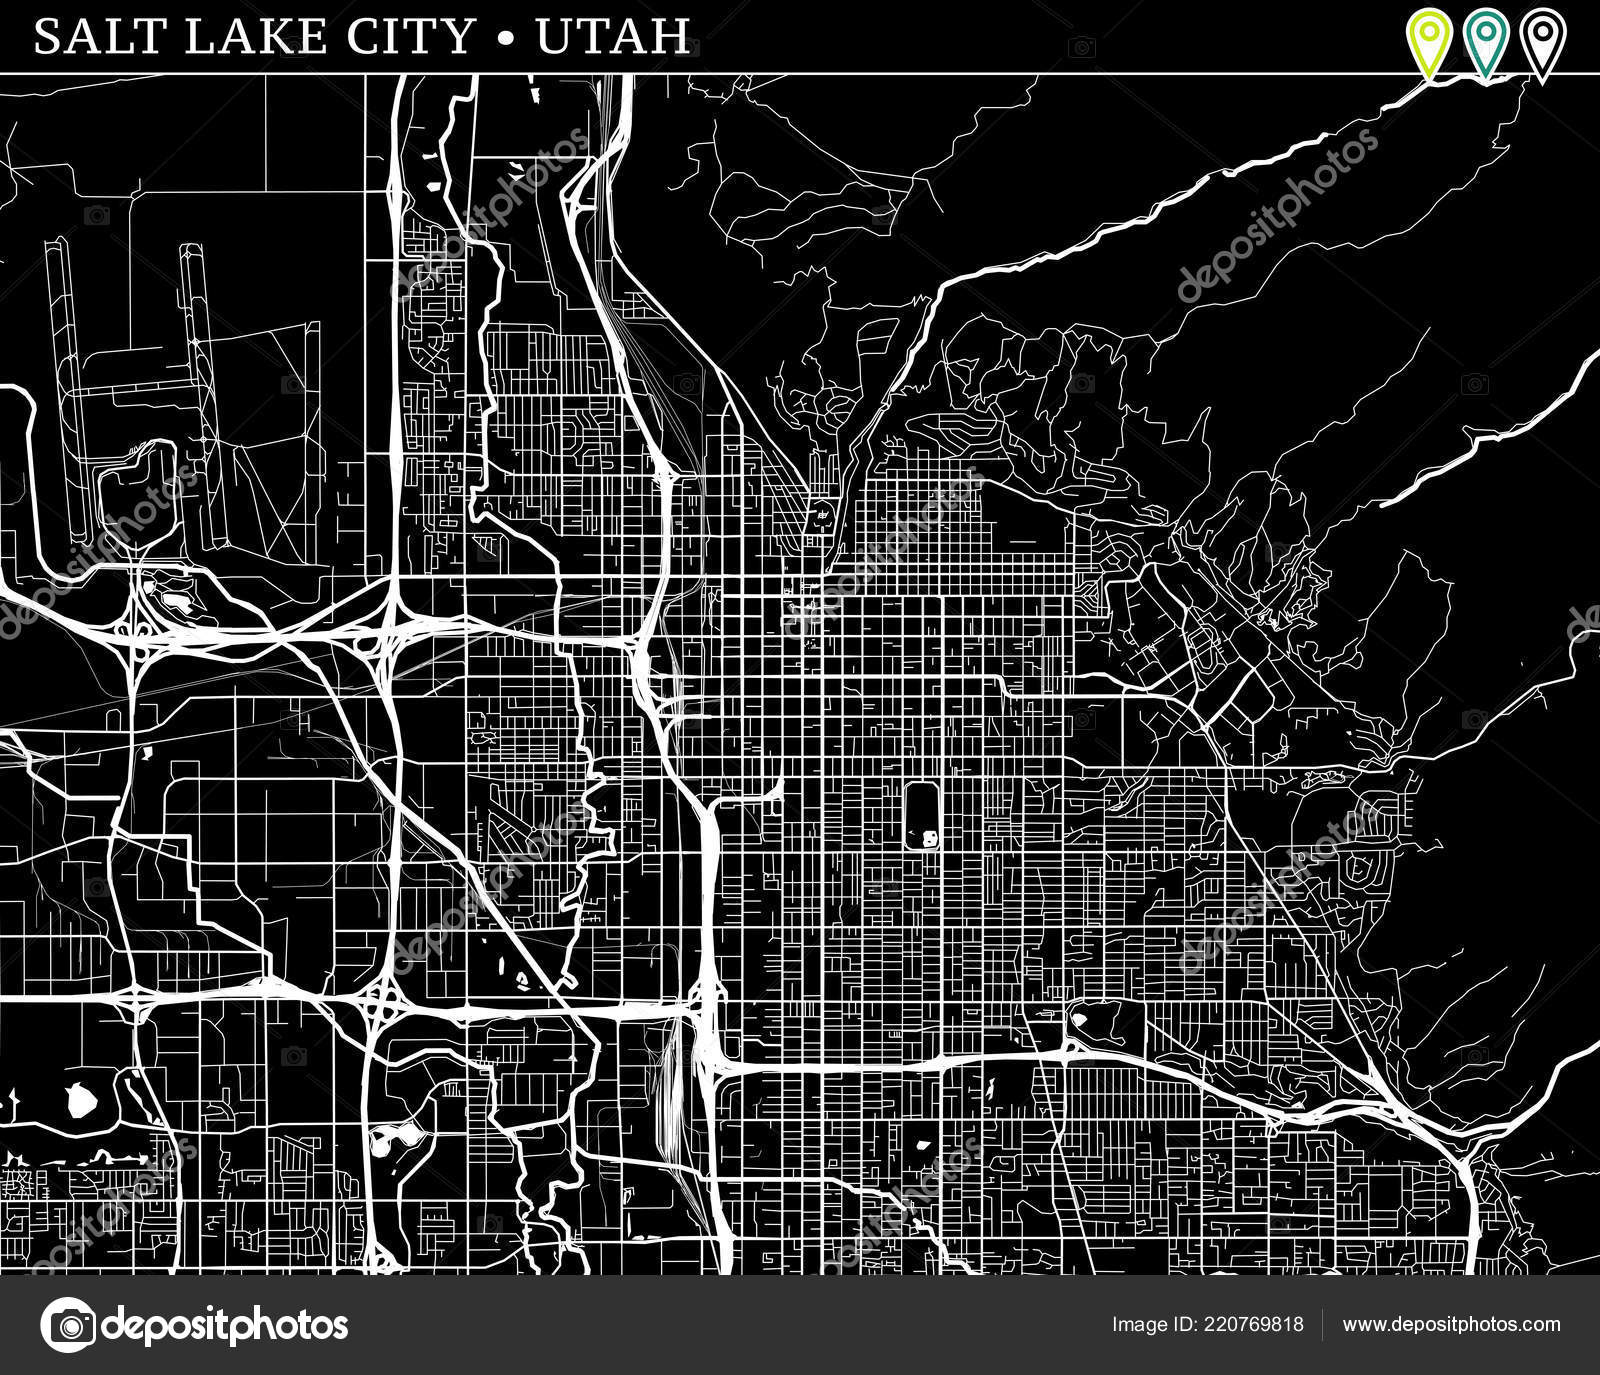 Simple Map Salt Lake City Utah Usa Black White Version ... on salt lake city va map, snowbird utah map, sioux city iowa on usa map, salt lake city on a state map, salt lake city streetcar map, salt lake city utah area map, salt lake city with map of america, southern utah tourism map, salt lake city zip code map, sandy utah on usa map, utah airports map, snowbird mountains north carolina map, salt lake city on us map, great salt lake map, lake city street map, salt lake city parking map, utah road map, kansas city missouri on usa map, ogden utah on usa map,